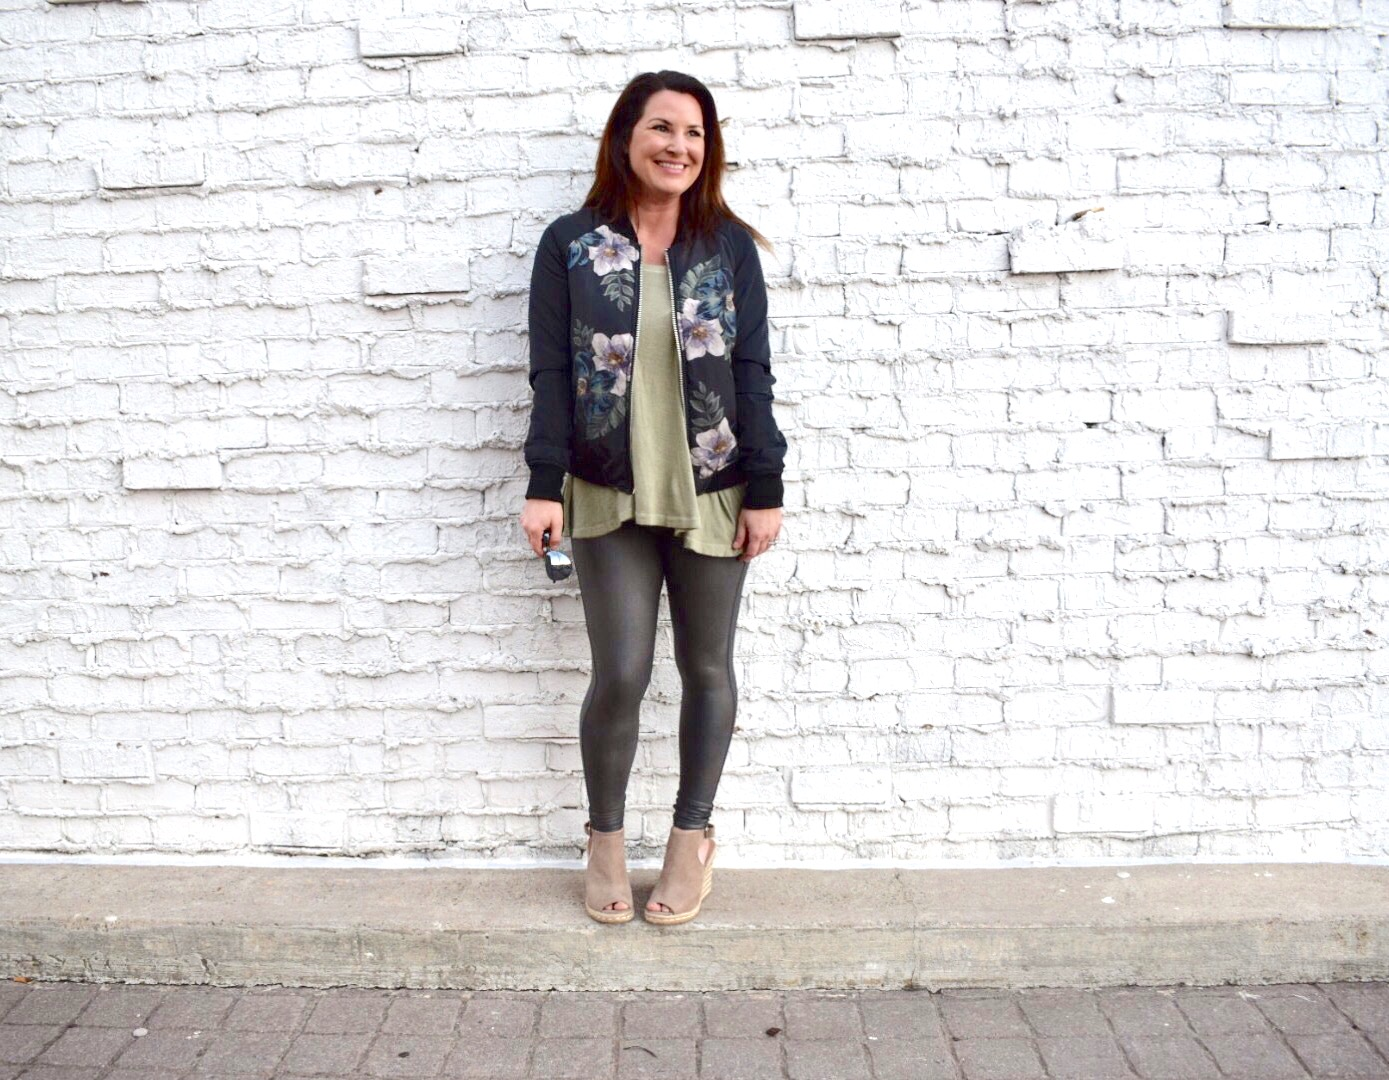 The Bomber Jacket and Gunmetal SPANX